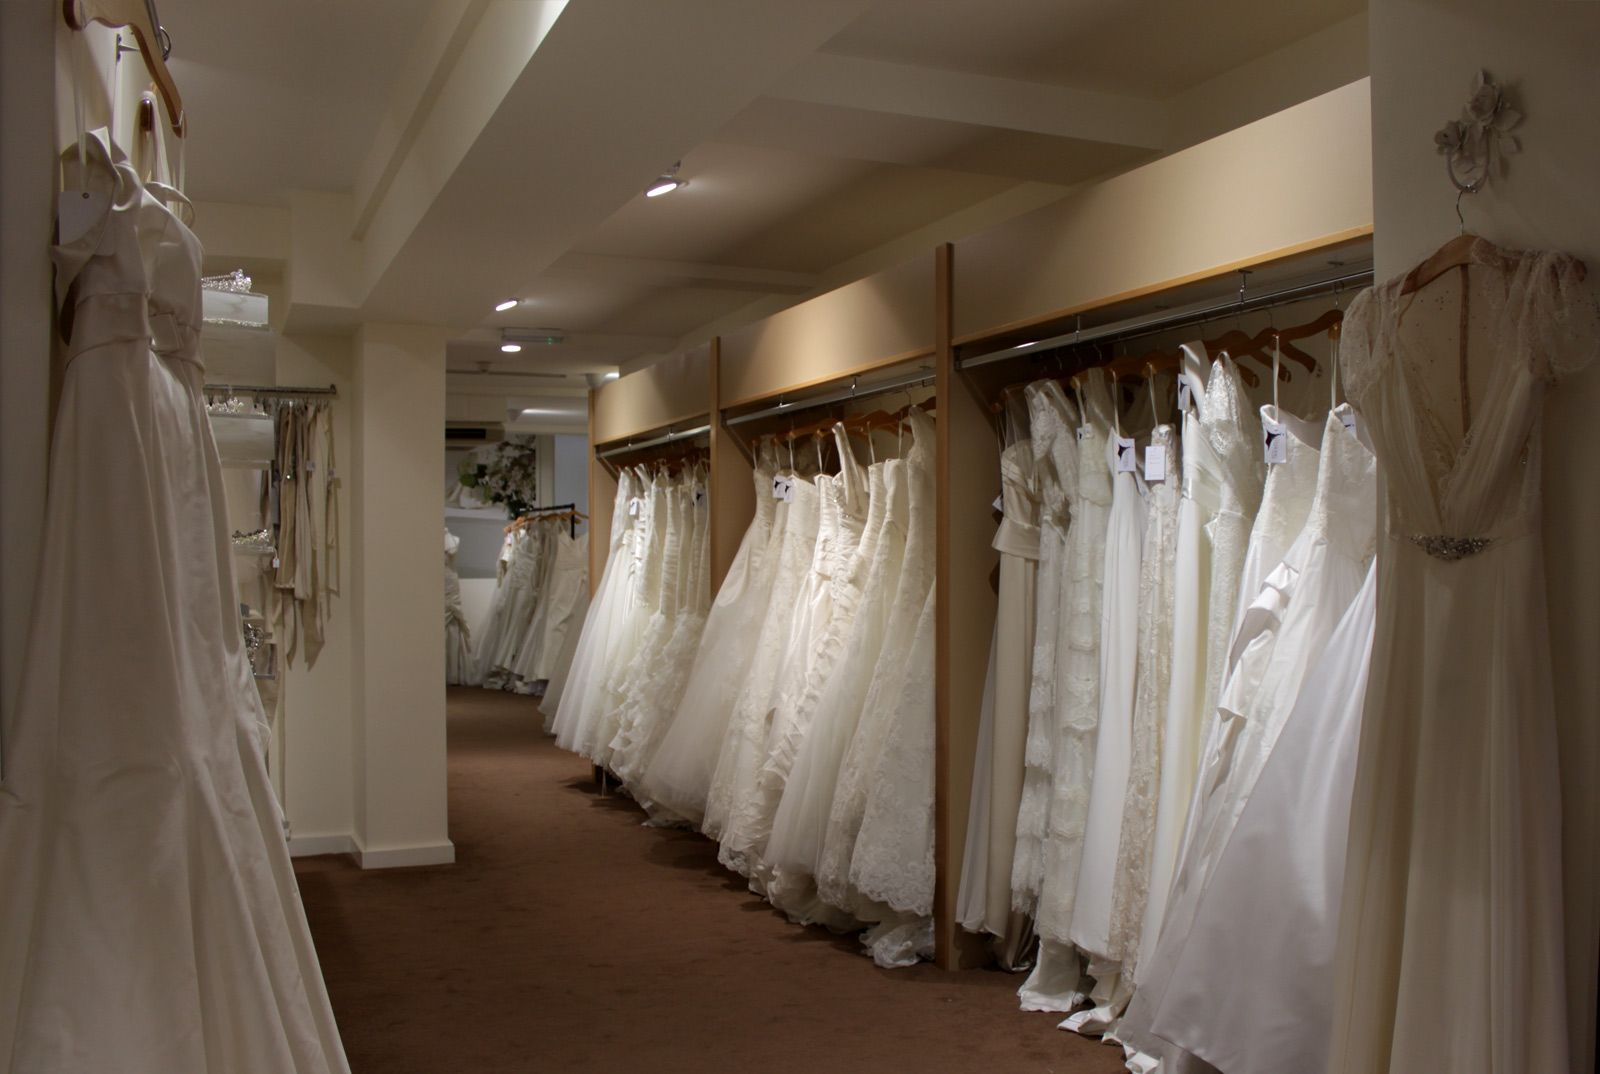 Inside the Shop - Look around our bridal department store | Weddings